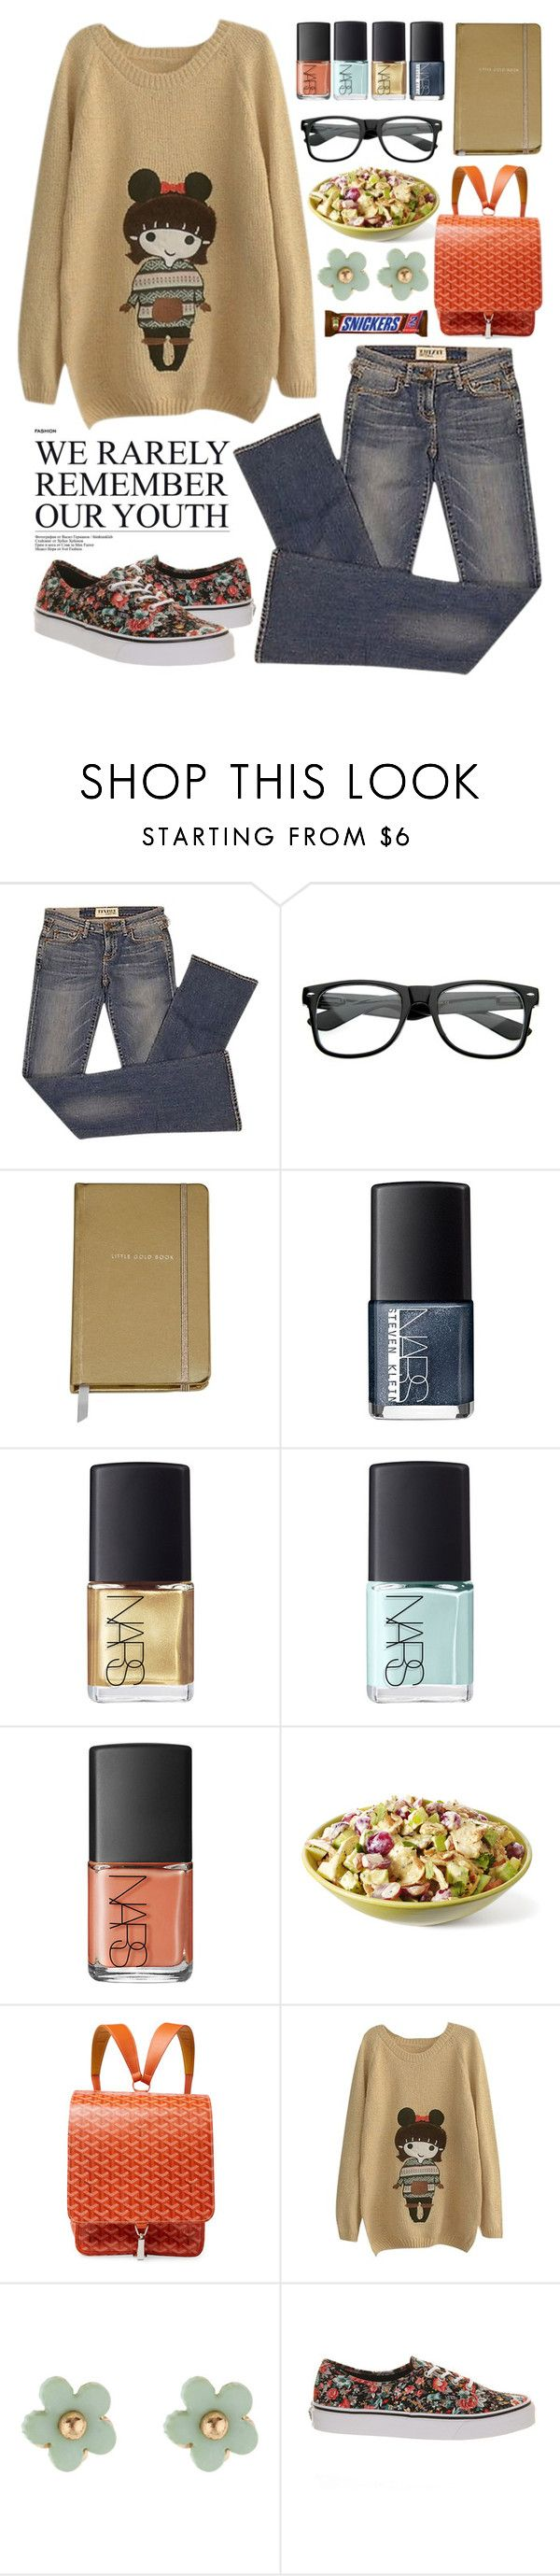 """Glasses Girl"" by boxthoughts ❤ liked on Polyvore featuring Elizabeth and James, Kate Spade, NARS Cosmetics, Goyard, Accessorize and Vans"